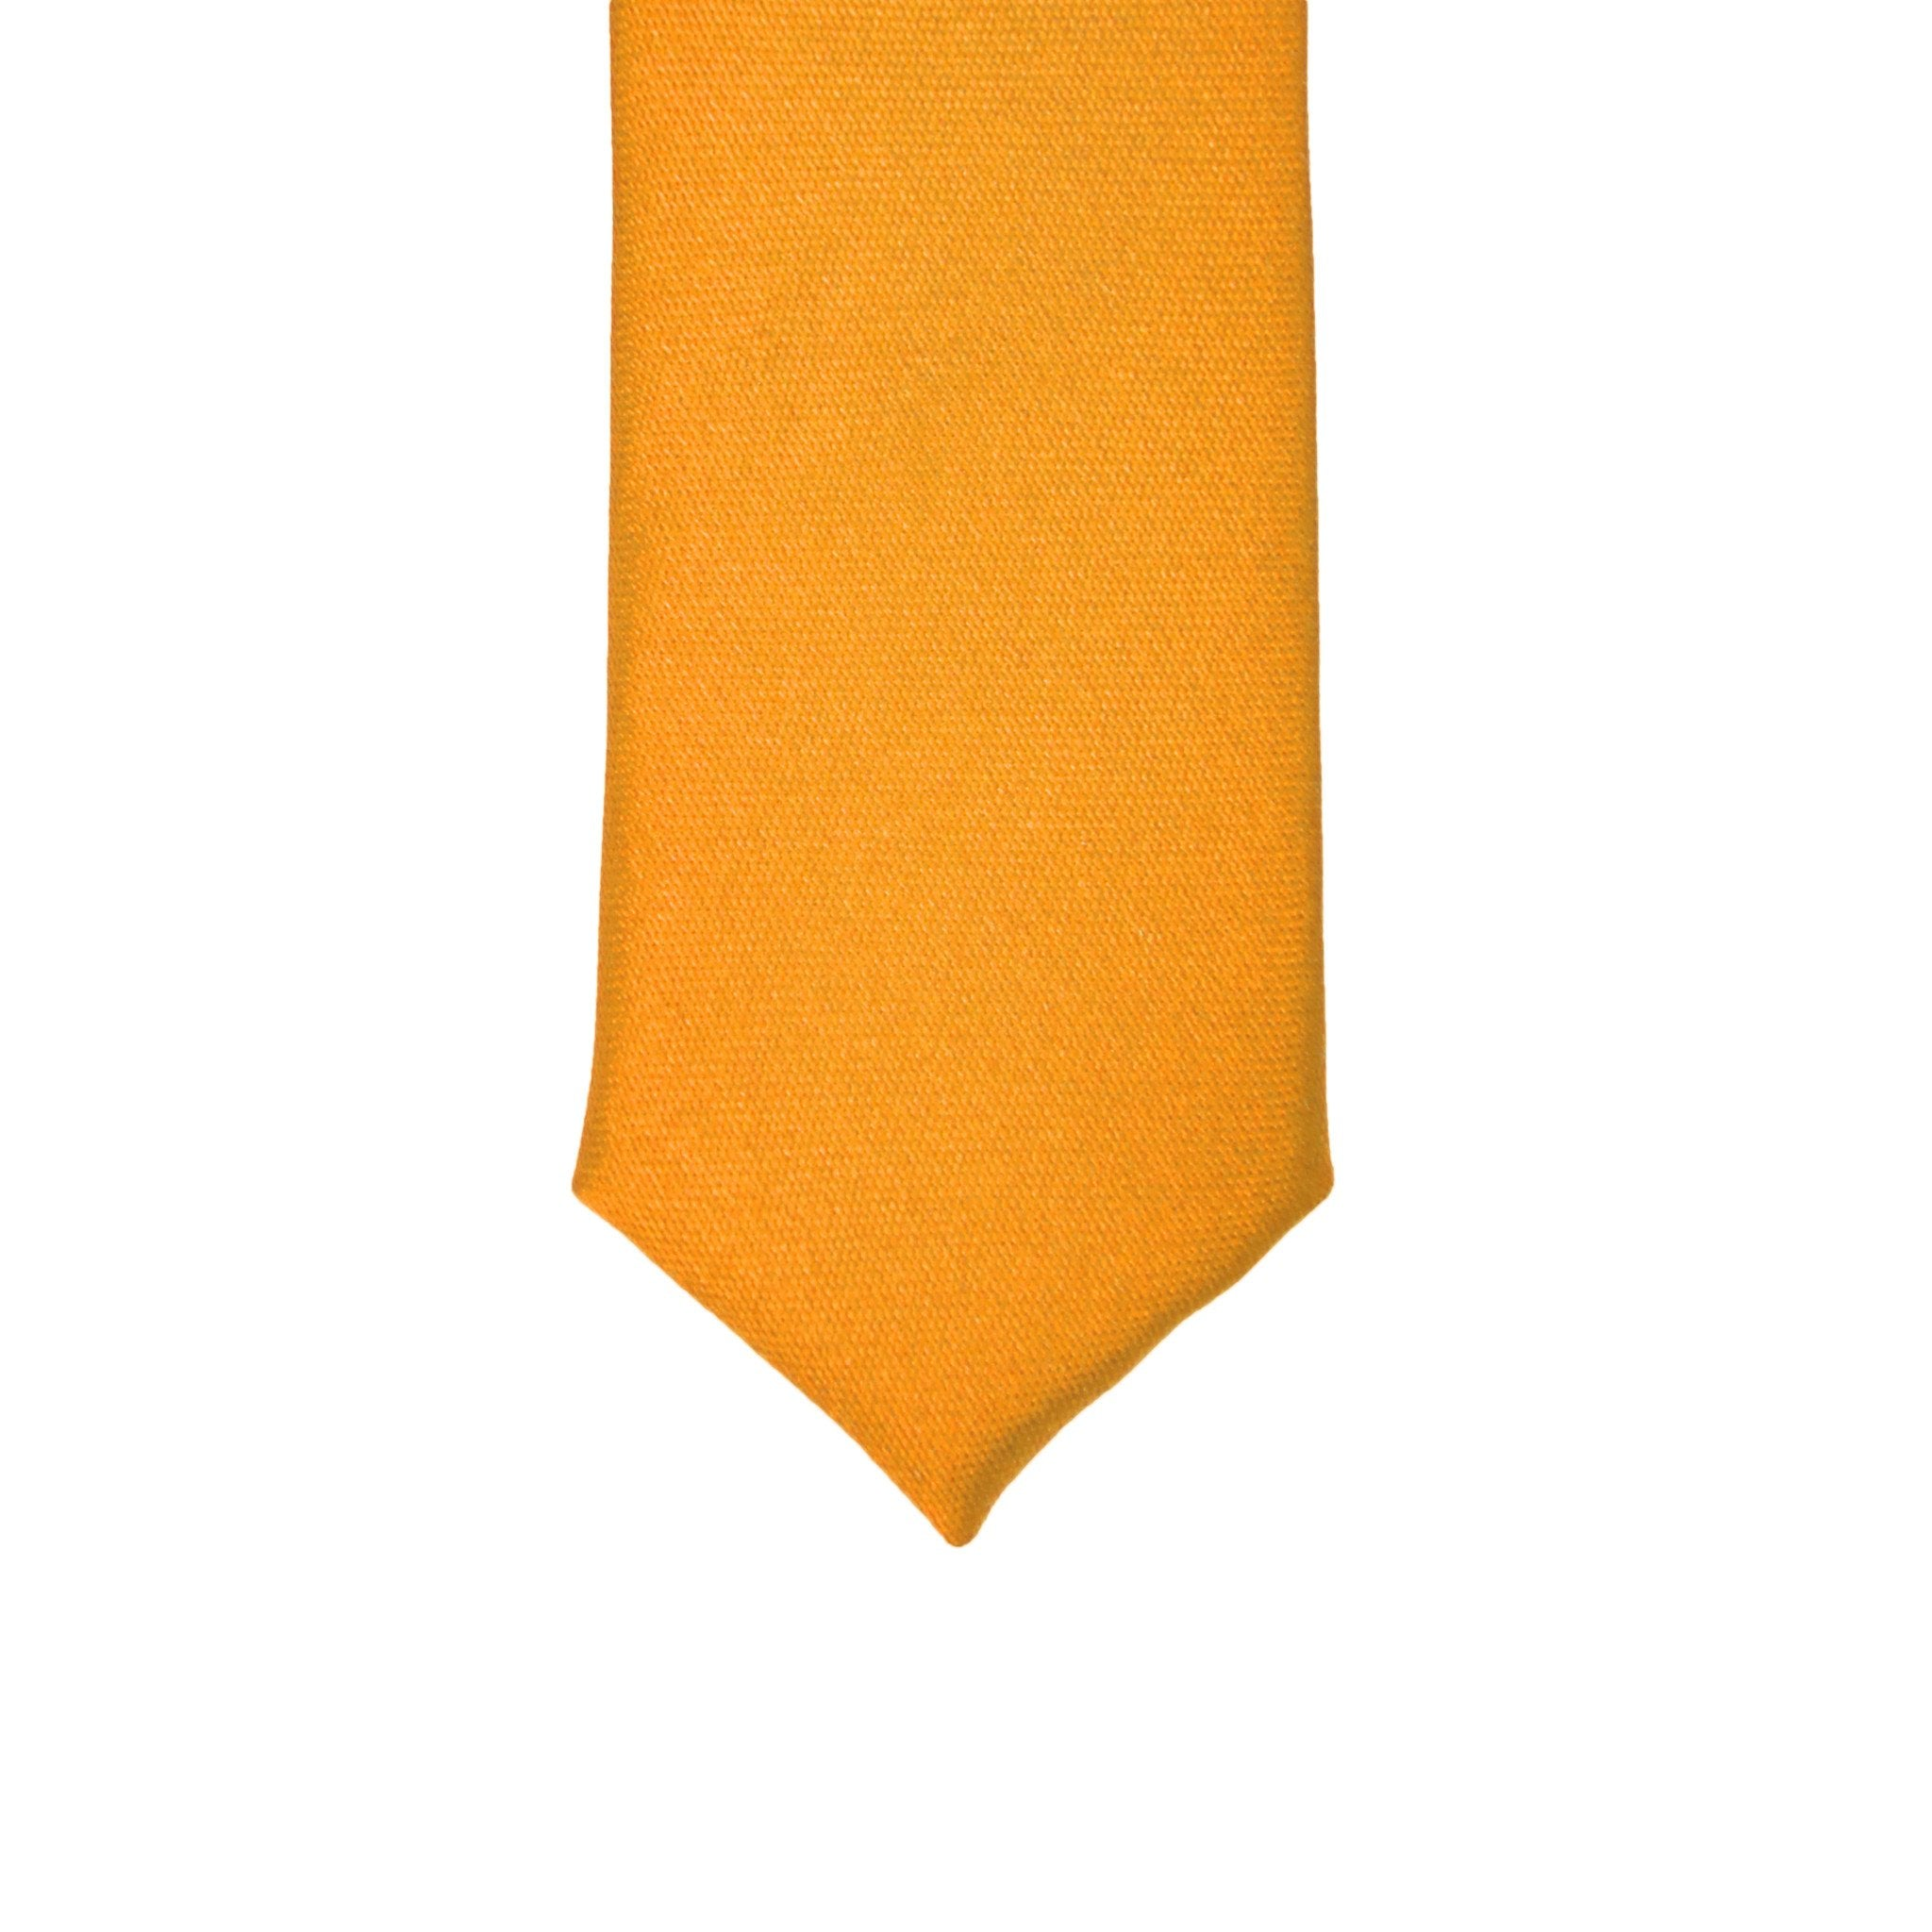 Super Skinny Orange Shiny Slim Tie - Giorgio's Menswear